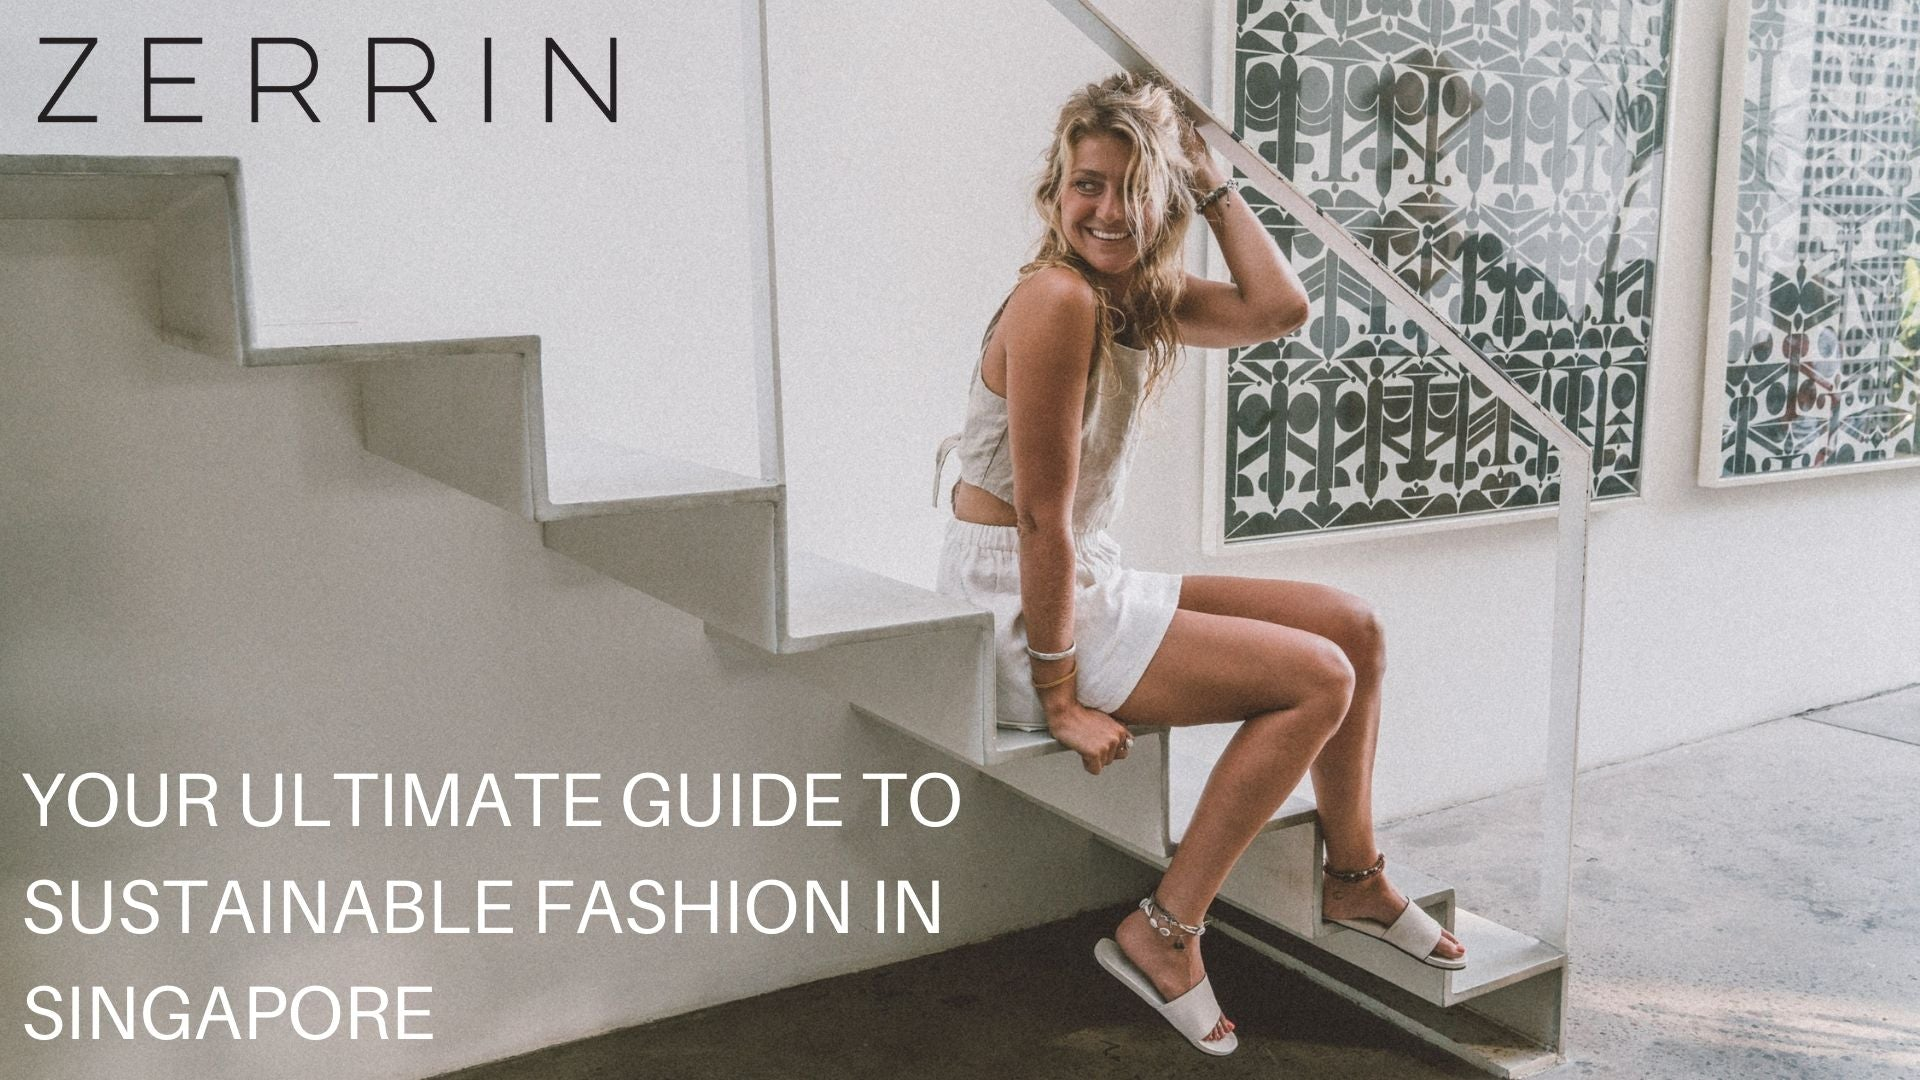 Your Ultimate Guide to Sustainable Fashion in Singapore